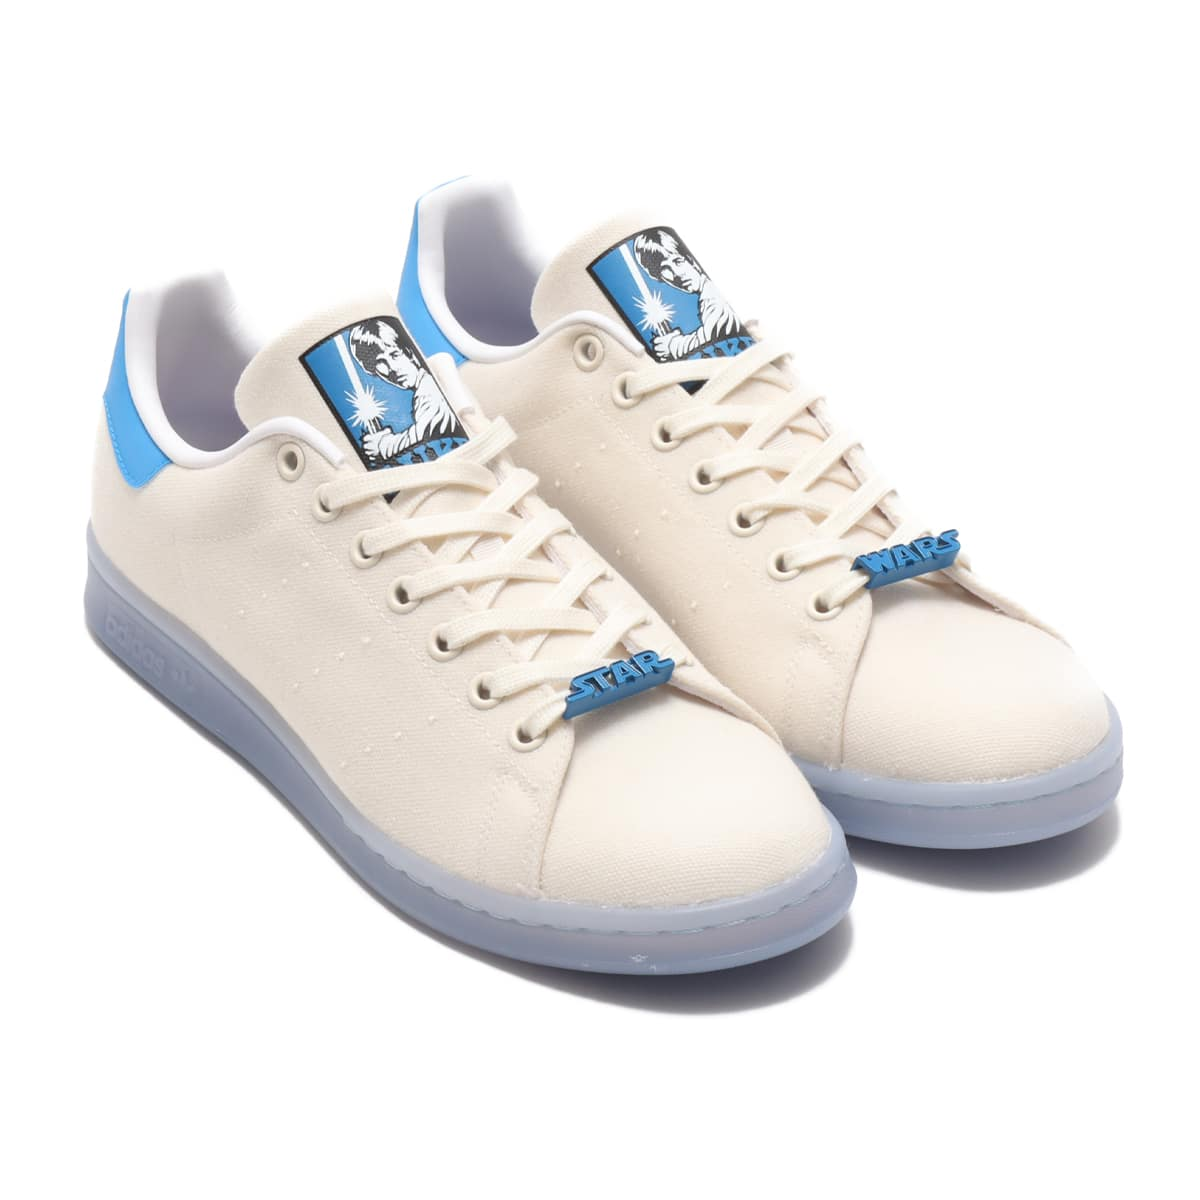 adidas STAN SMITH CHALK WHITE/FTWR WHITE/BRIGHT BLUE 20SS-S_photo_large